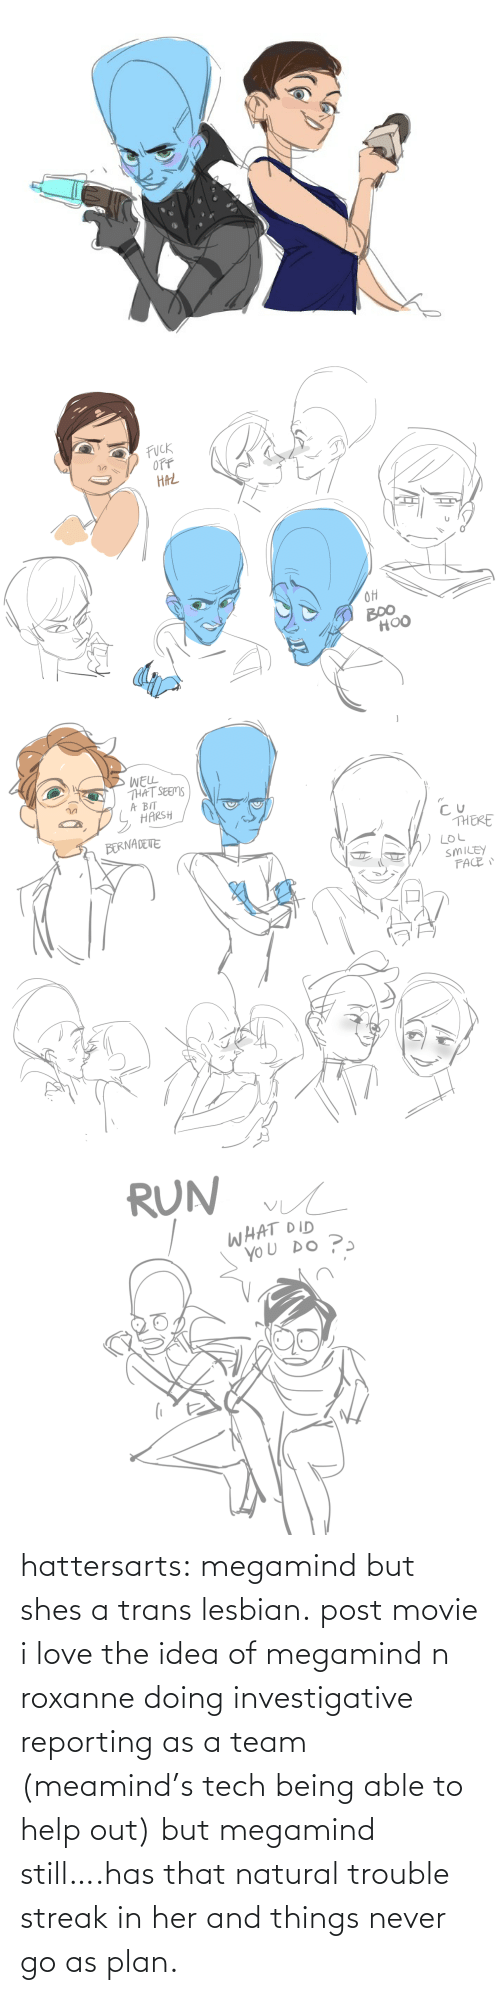 streak: hattersarts:  megamind but shes a trans lesbian.  post movie i love the idea of megamind n roxanne doing investigative reporting as a team (meamind's tech being able to help out) but megamind still….has that natural trouble streak in her and things never go as plan.